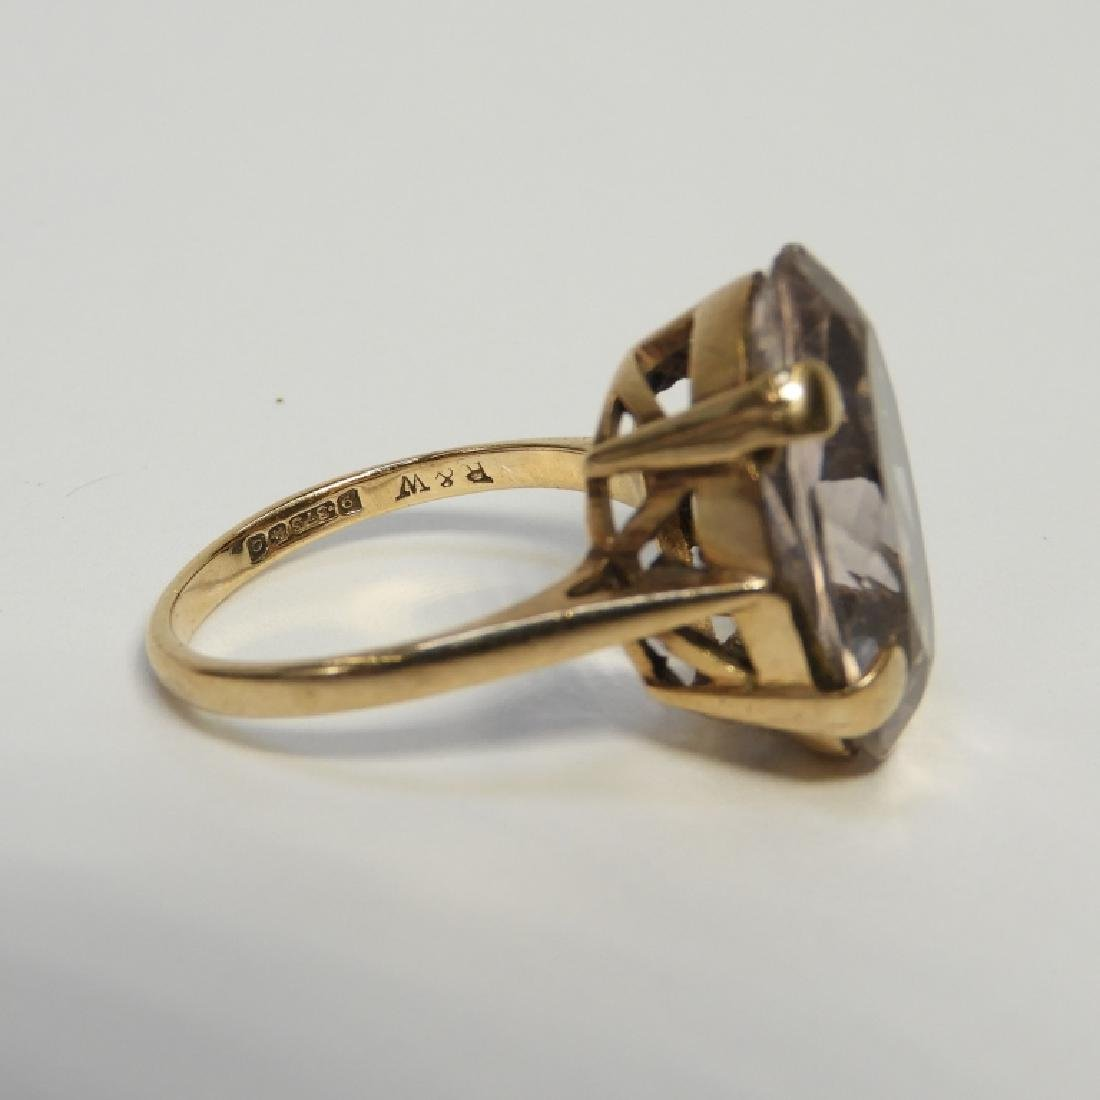 Estate 14K Yellow Gold Pale Amethyst Lady's Ring - 4